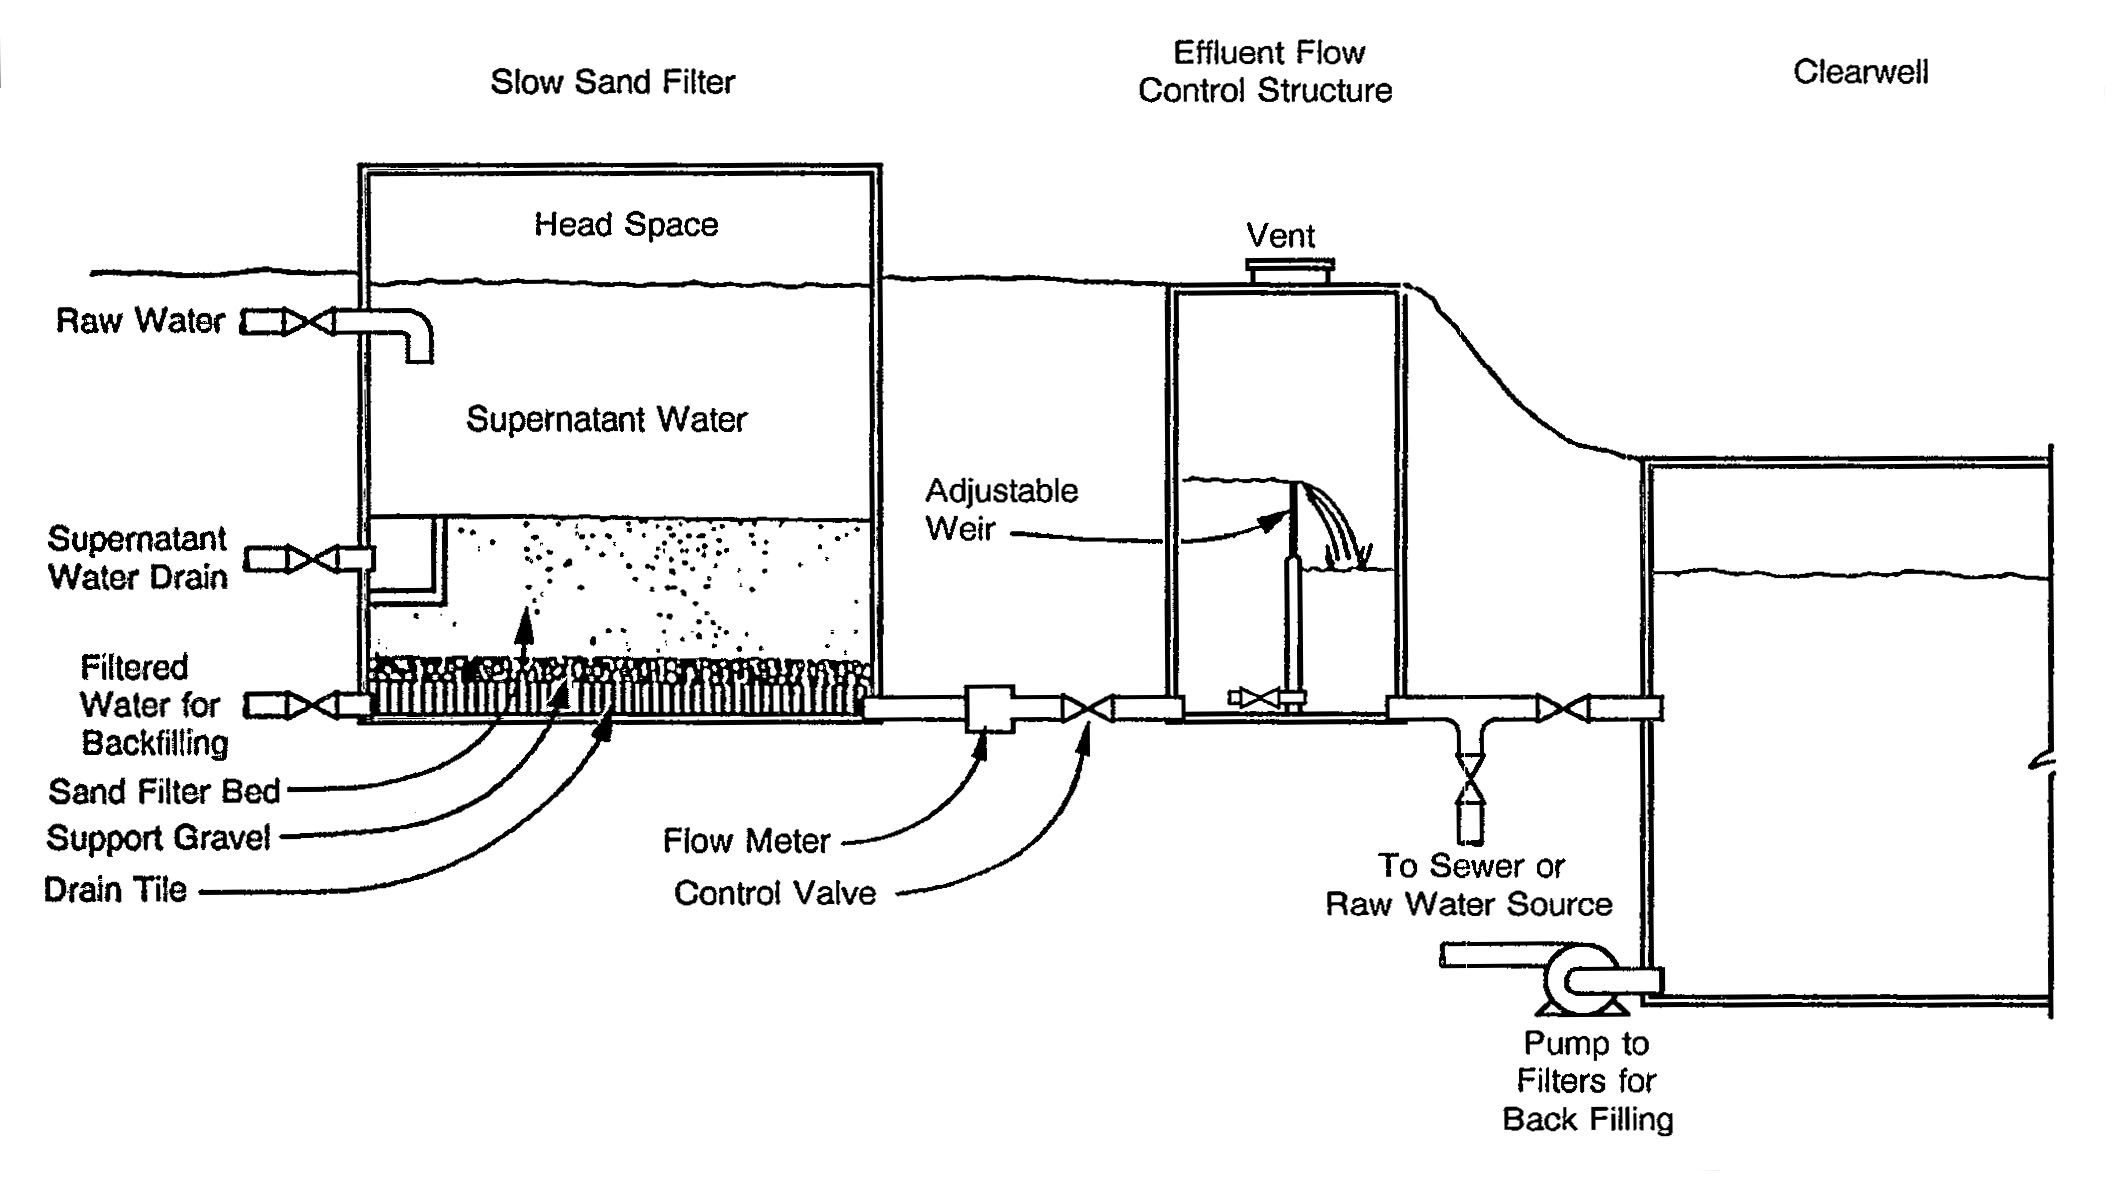 swimming pool sand filter diagram domestic lighting wiring uk file slow epa jpg wikimedia commons